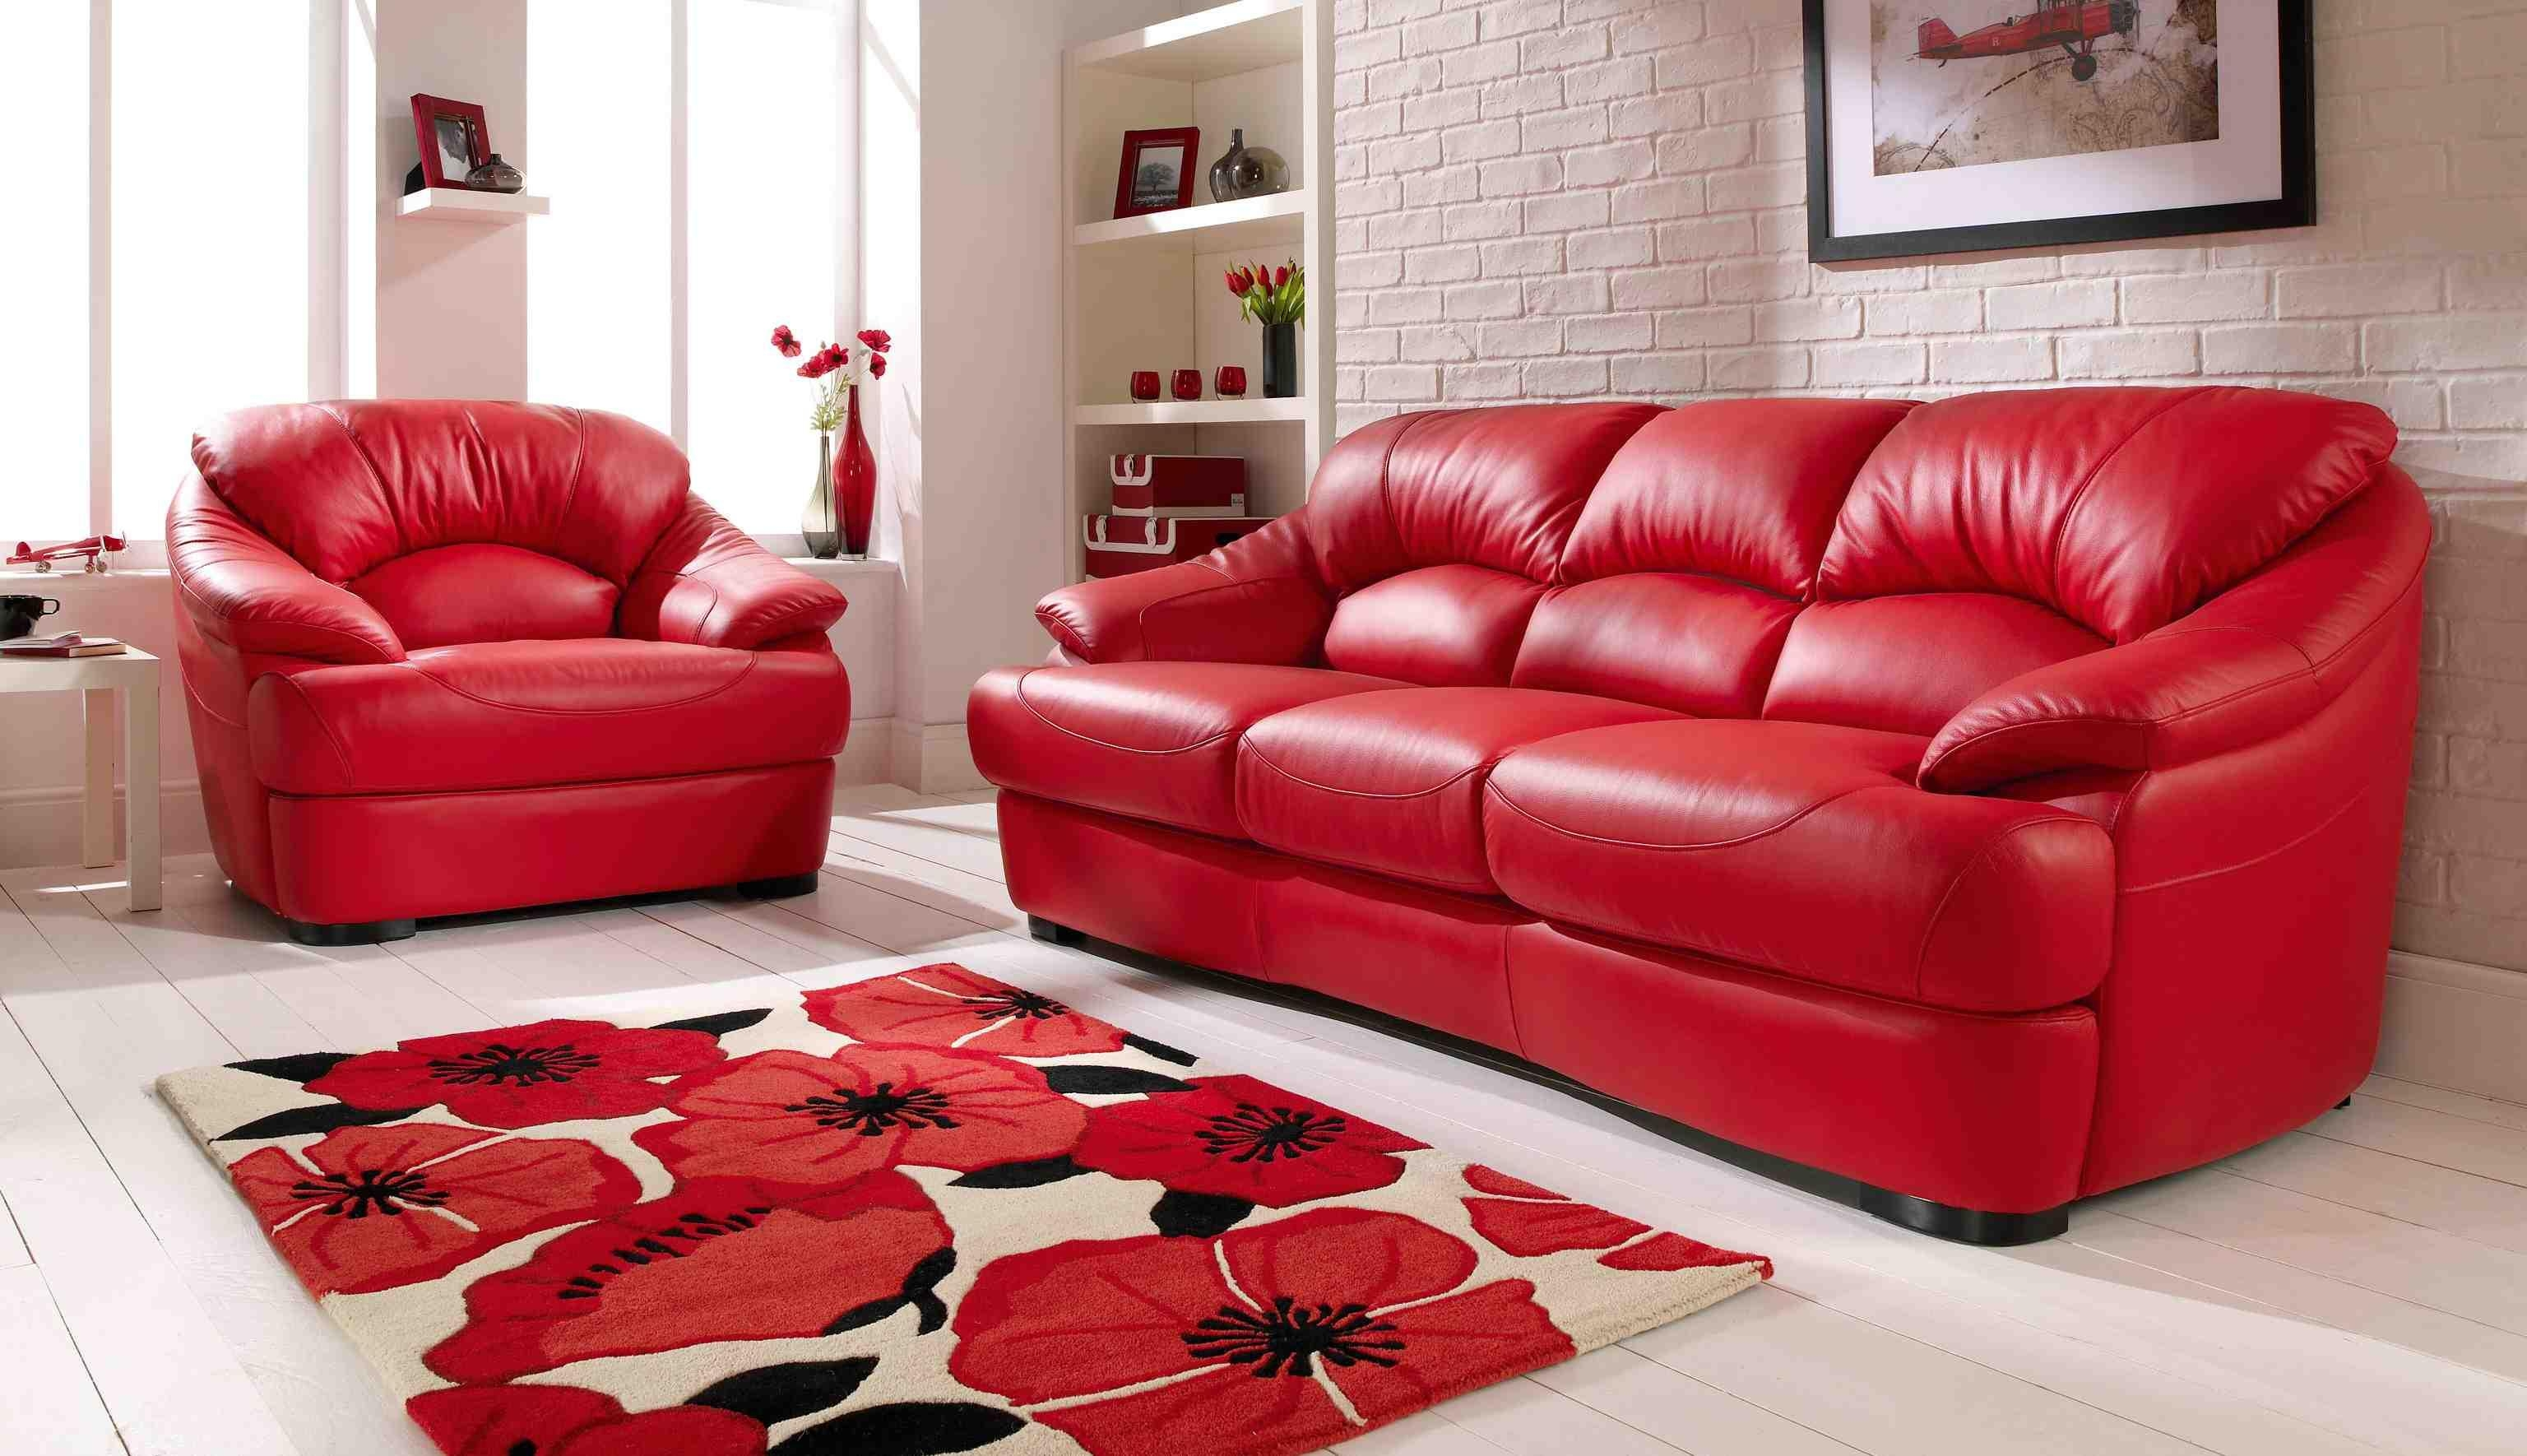 Living Room: Enchanting Red Living Room Chairs Design Small Red Pertaining To Red Sofas And Chairs (Image 8 of 20)